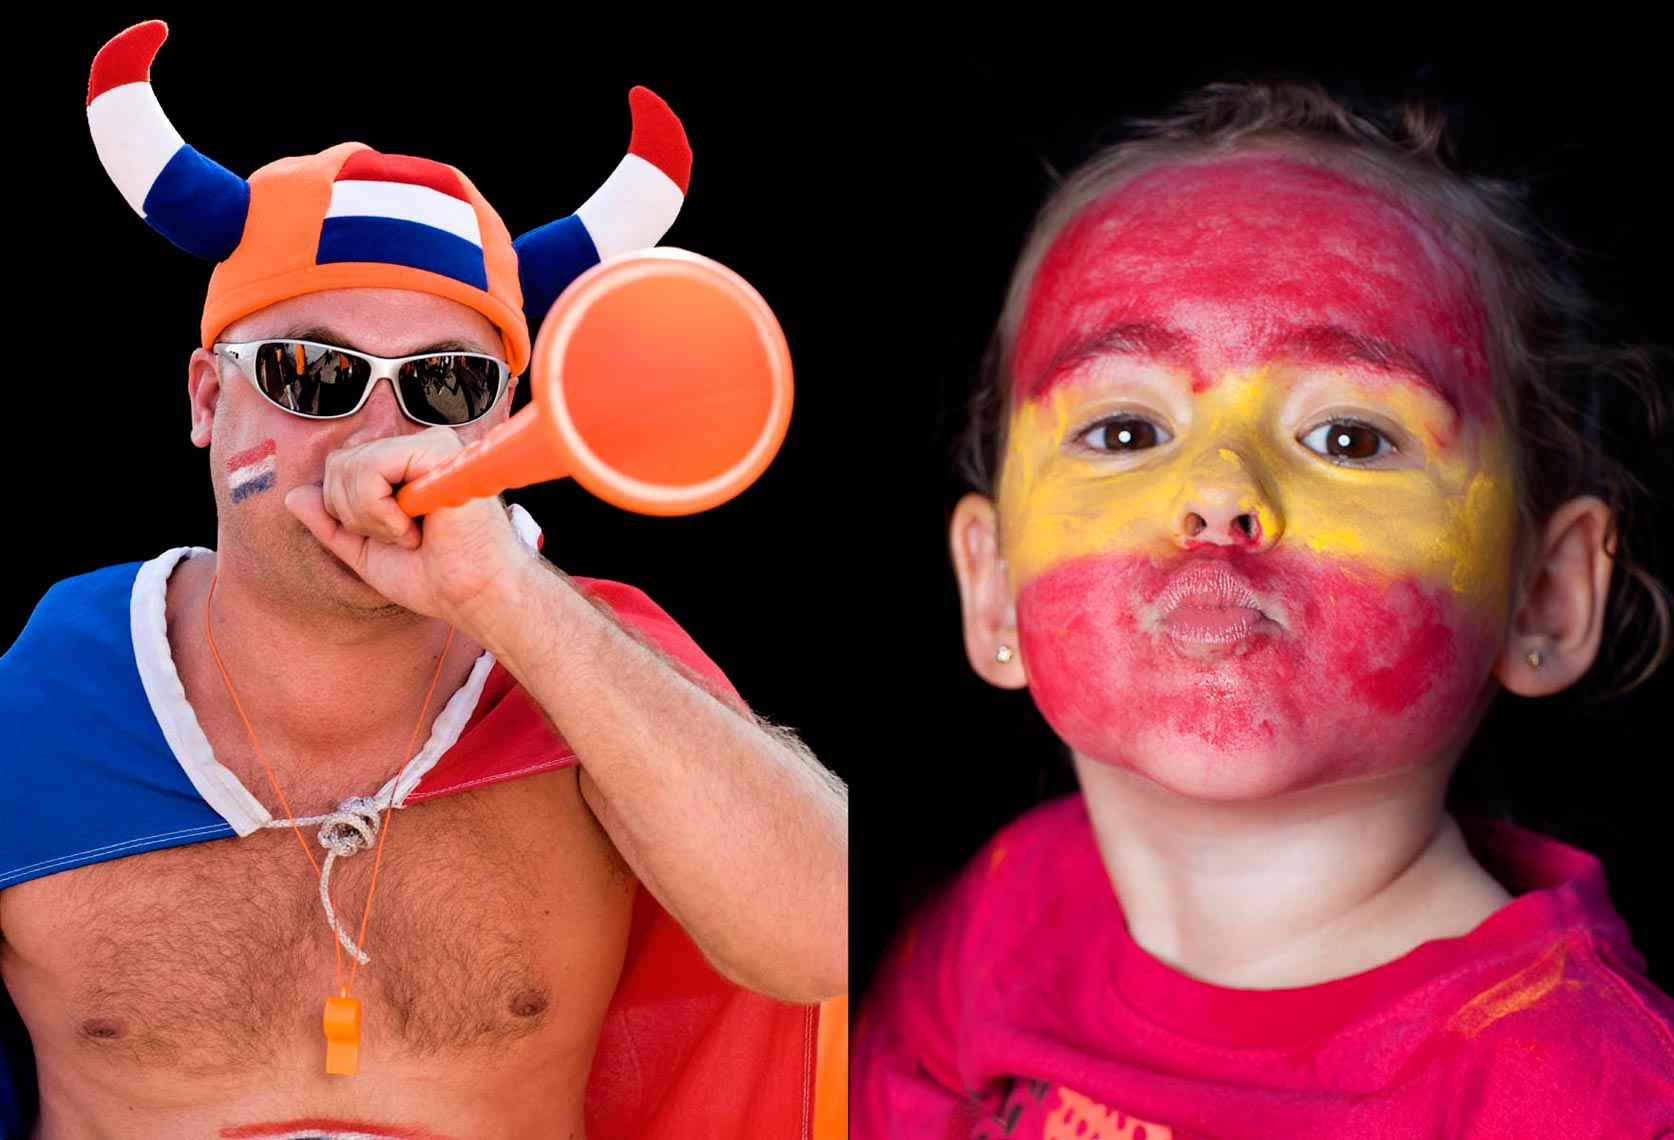 Holland and Spain World Cup Soccer fans